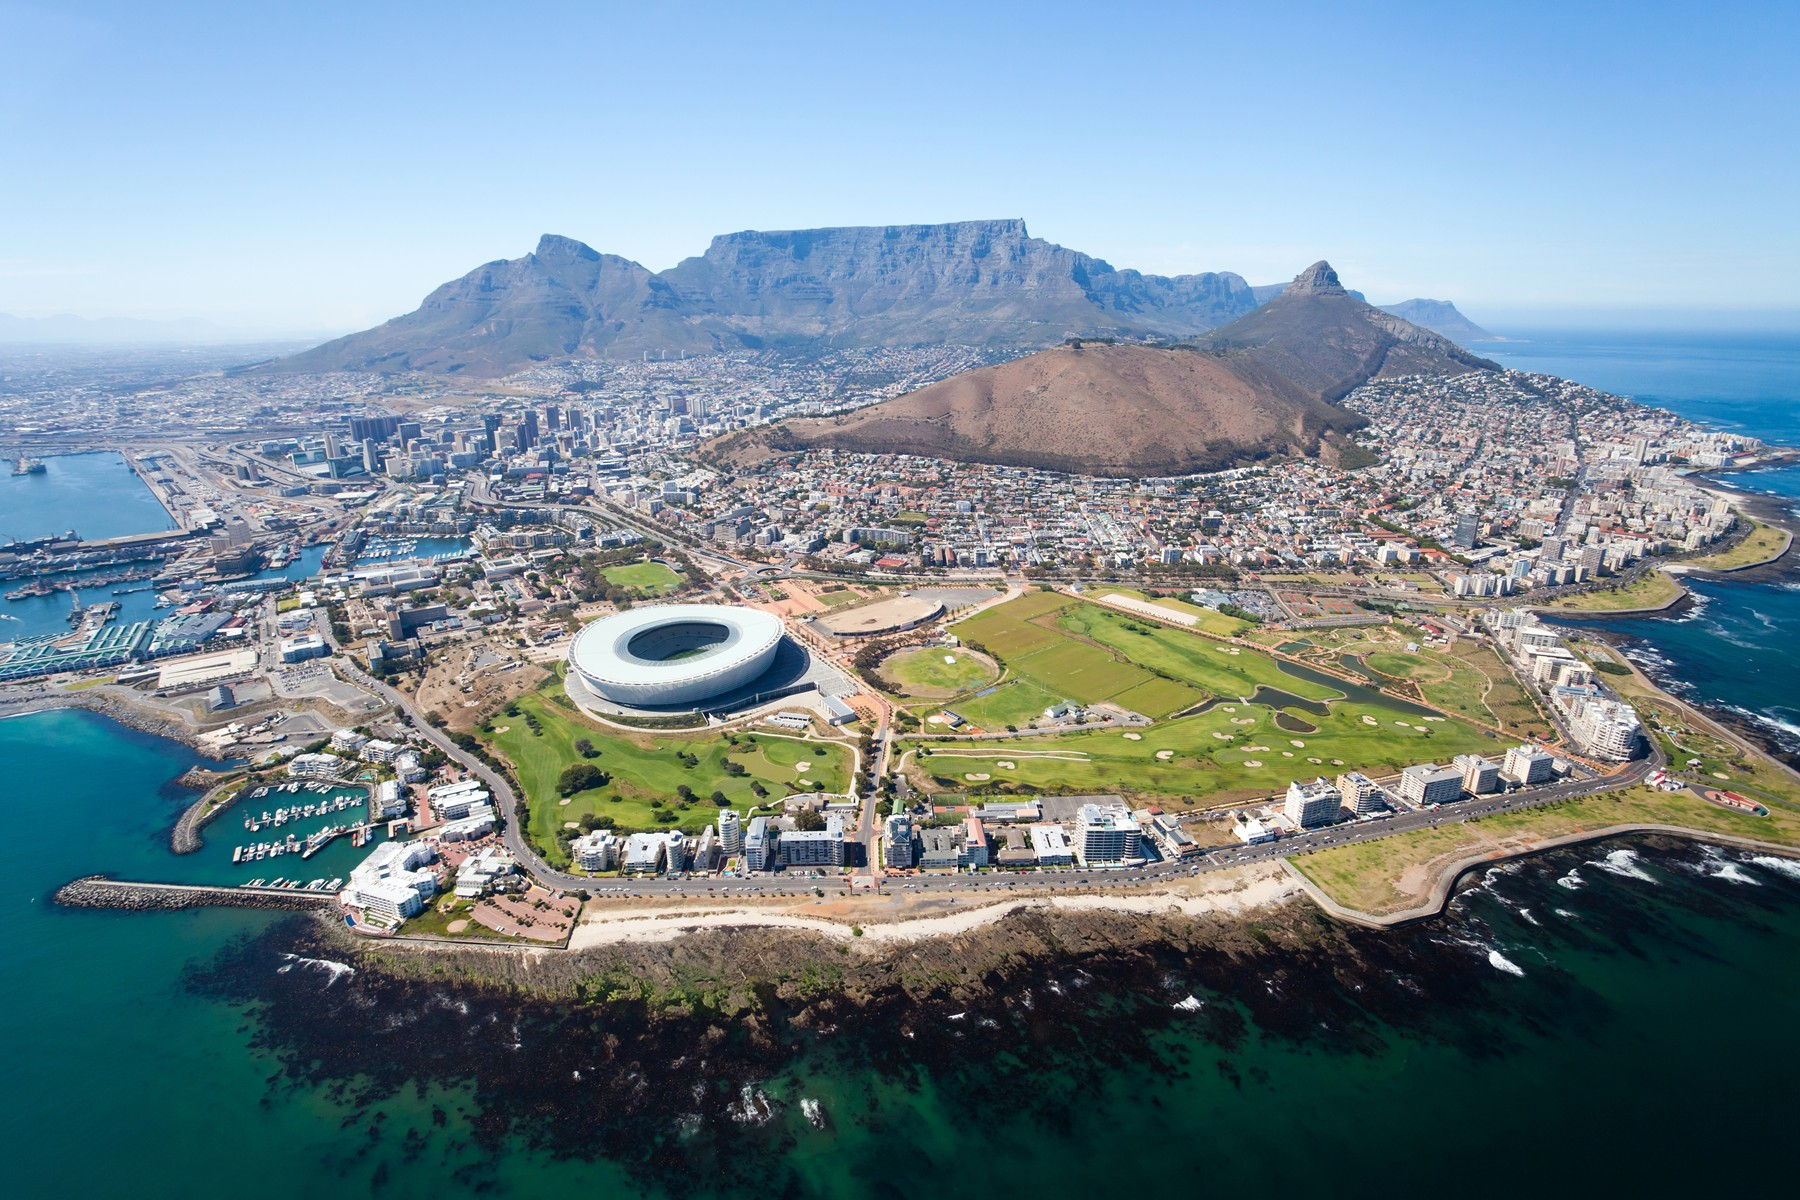 Cape Town aerial view, South Africa